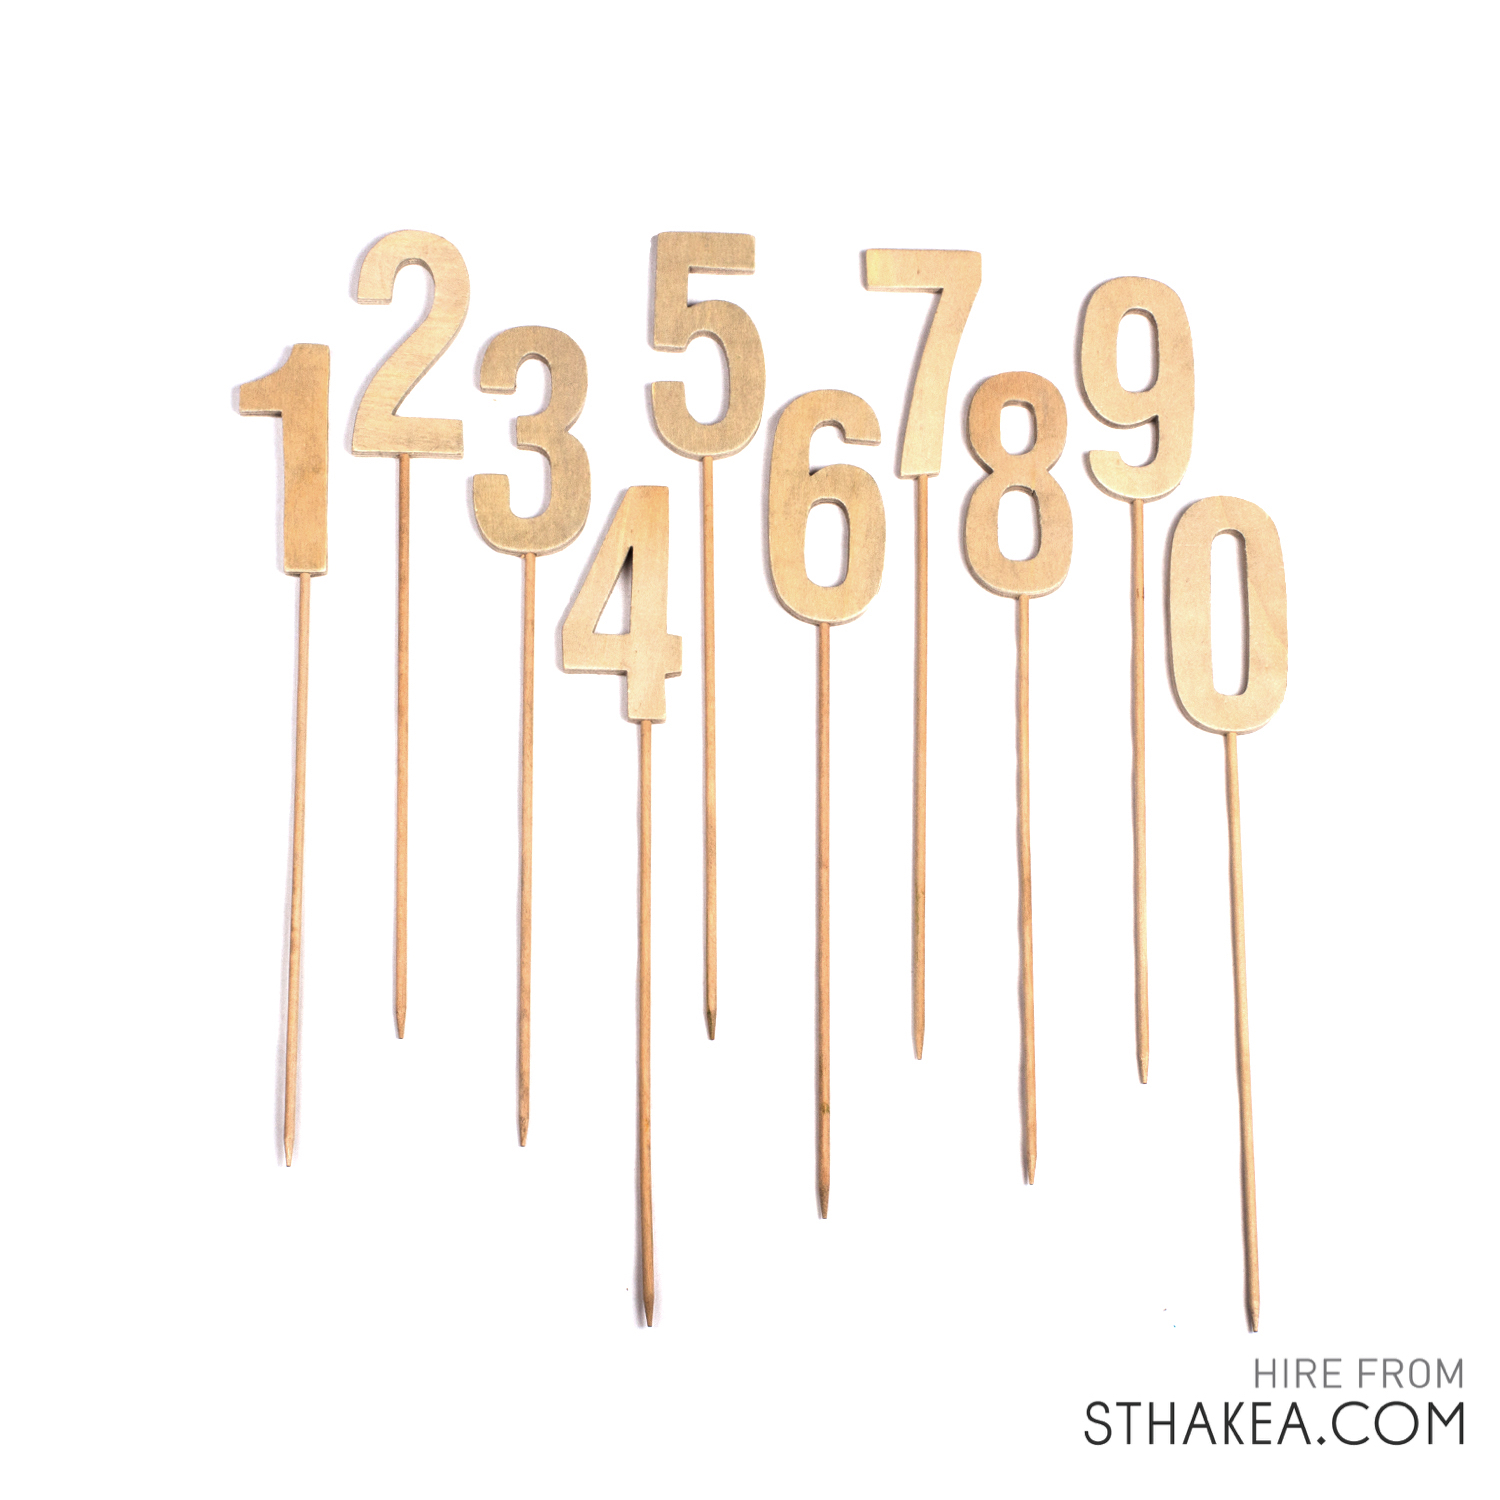 St Hakea Melbourne Event Hire Timber Numbers.jpg